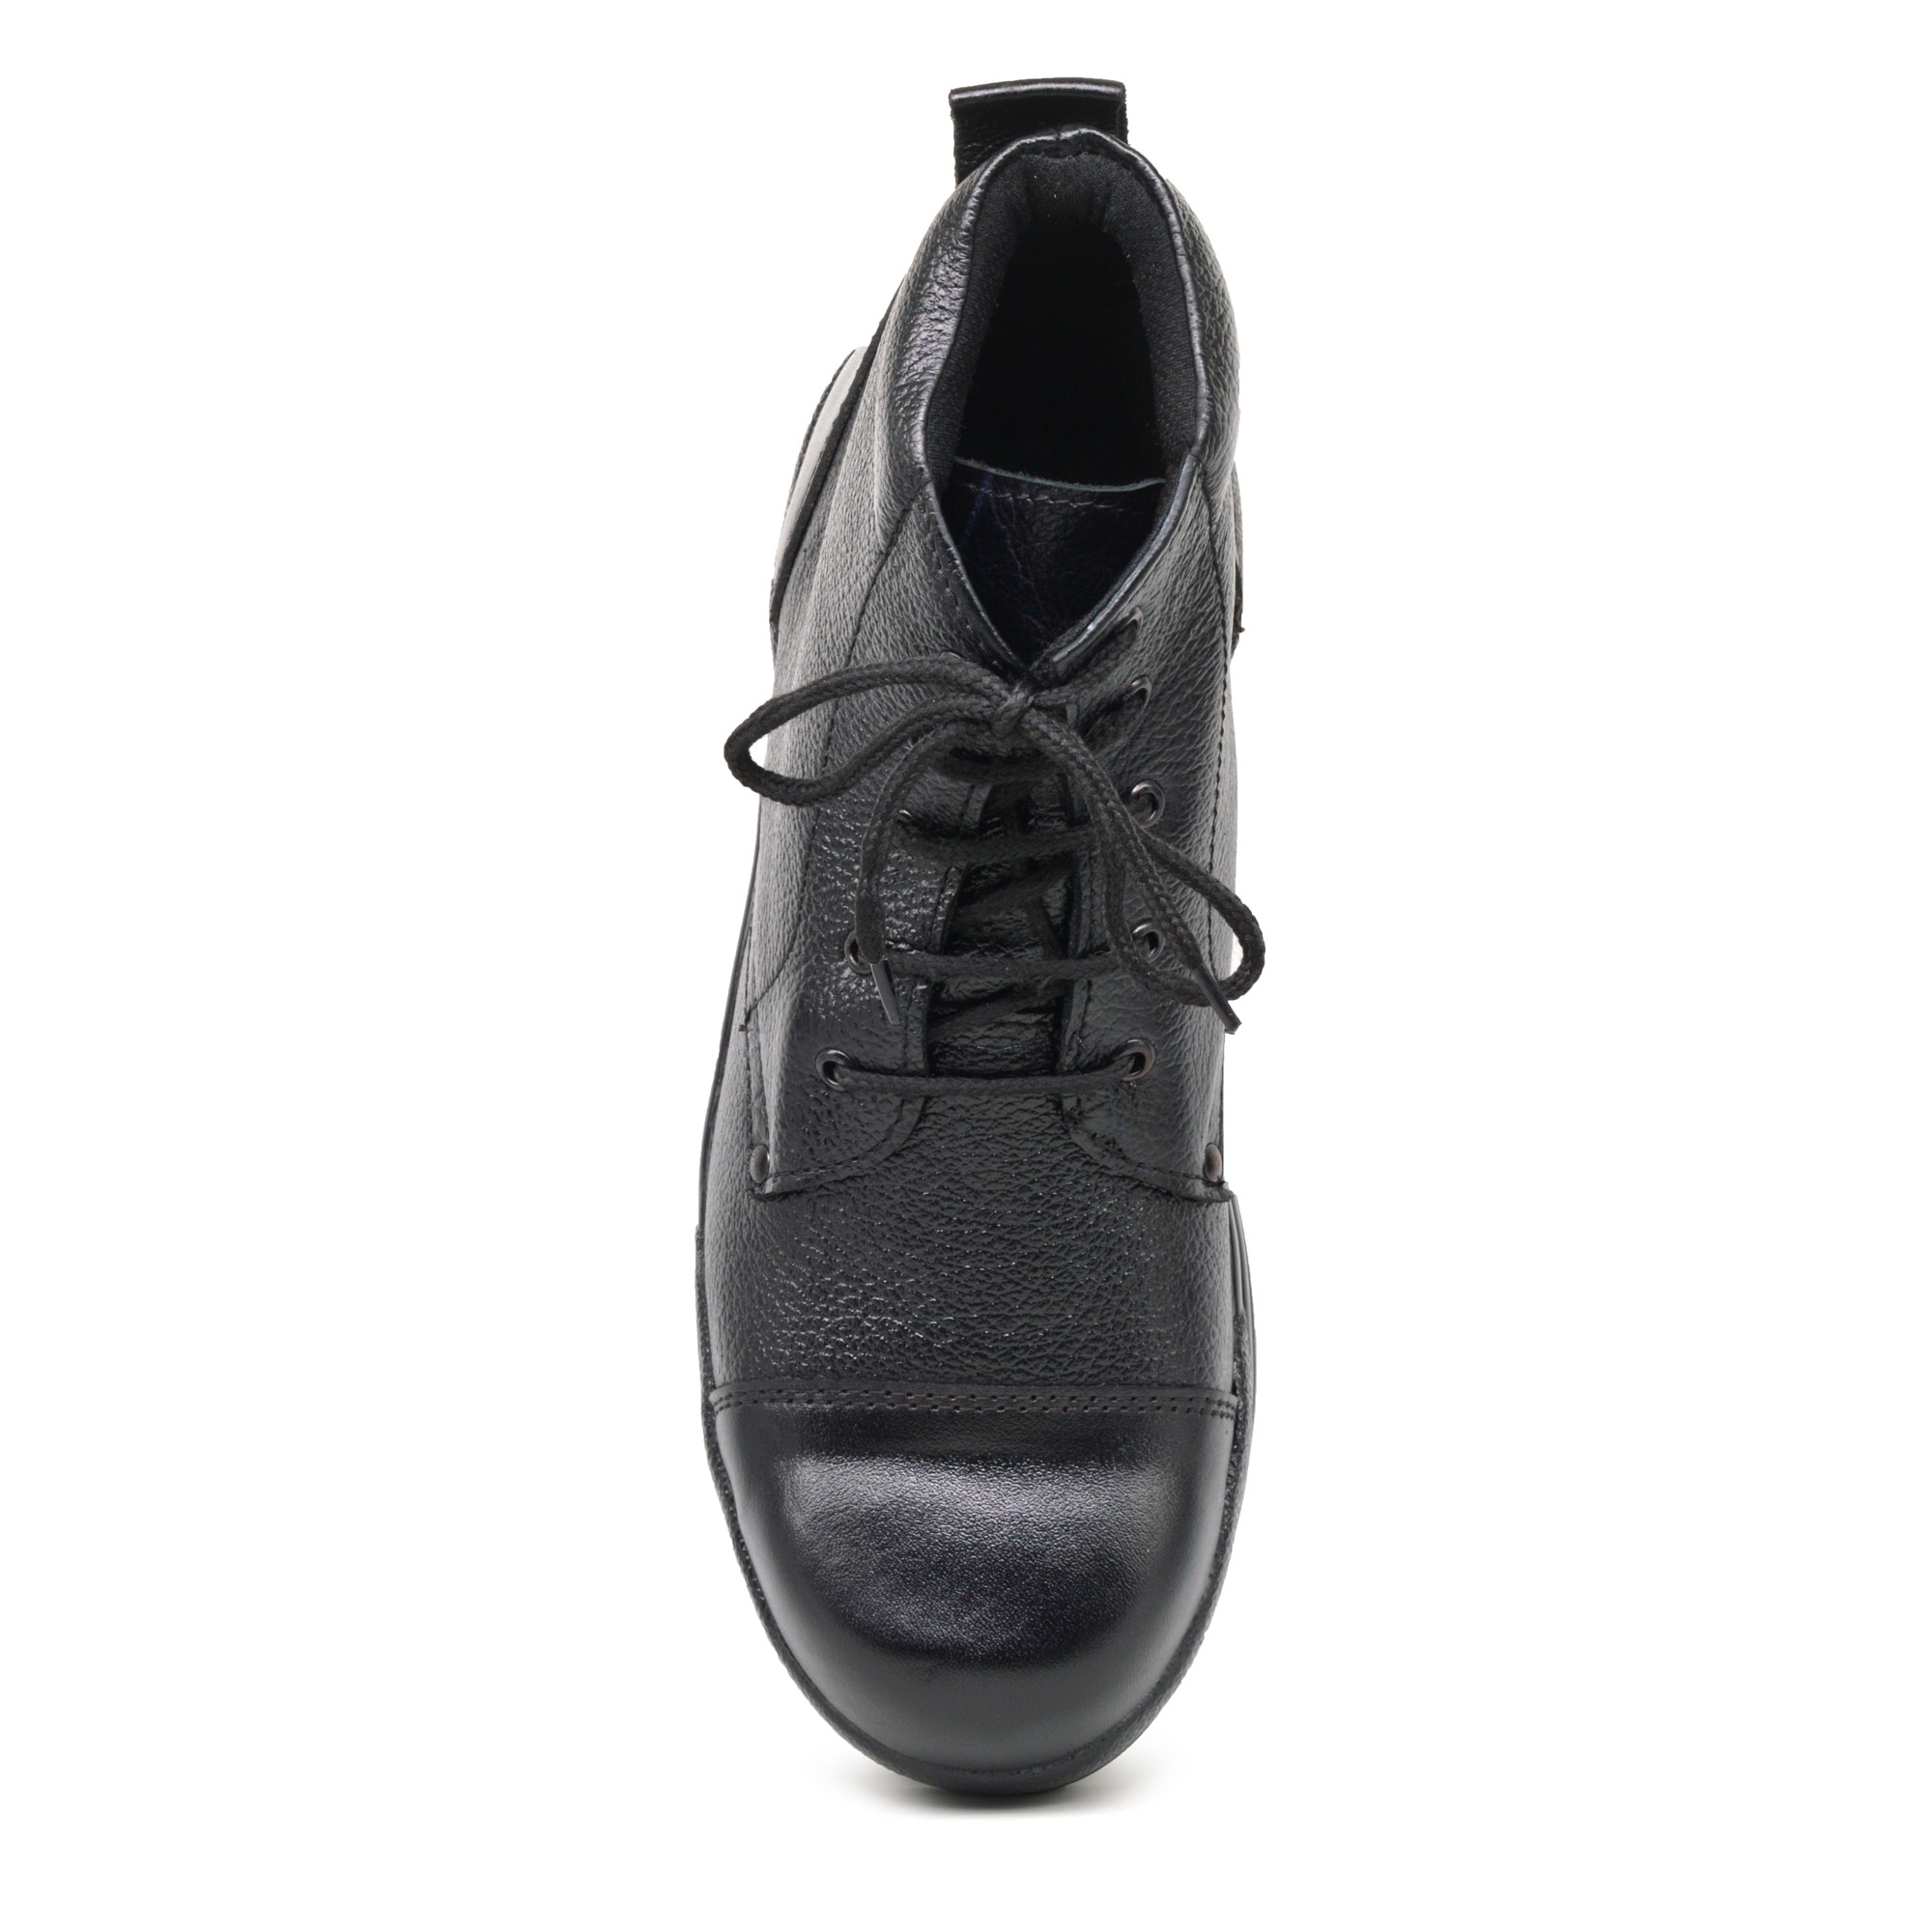 IMCOLUS232.320_BLACK HIGH QUALITY LEATHER LONG SAFETY SHOES IMCOLUS232.320_BLACK (BLACK, 5-8, 4 PAIR)